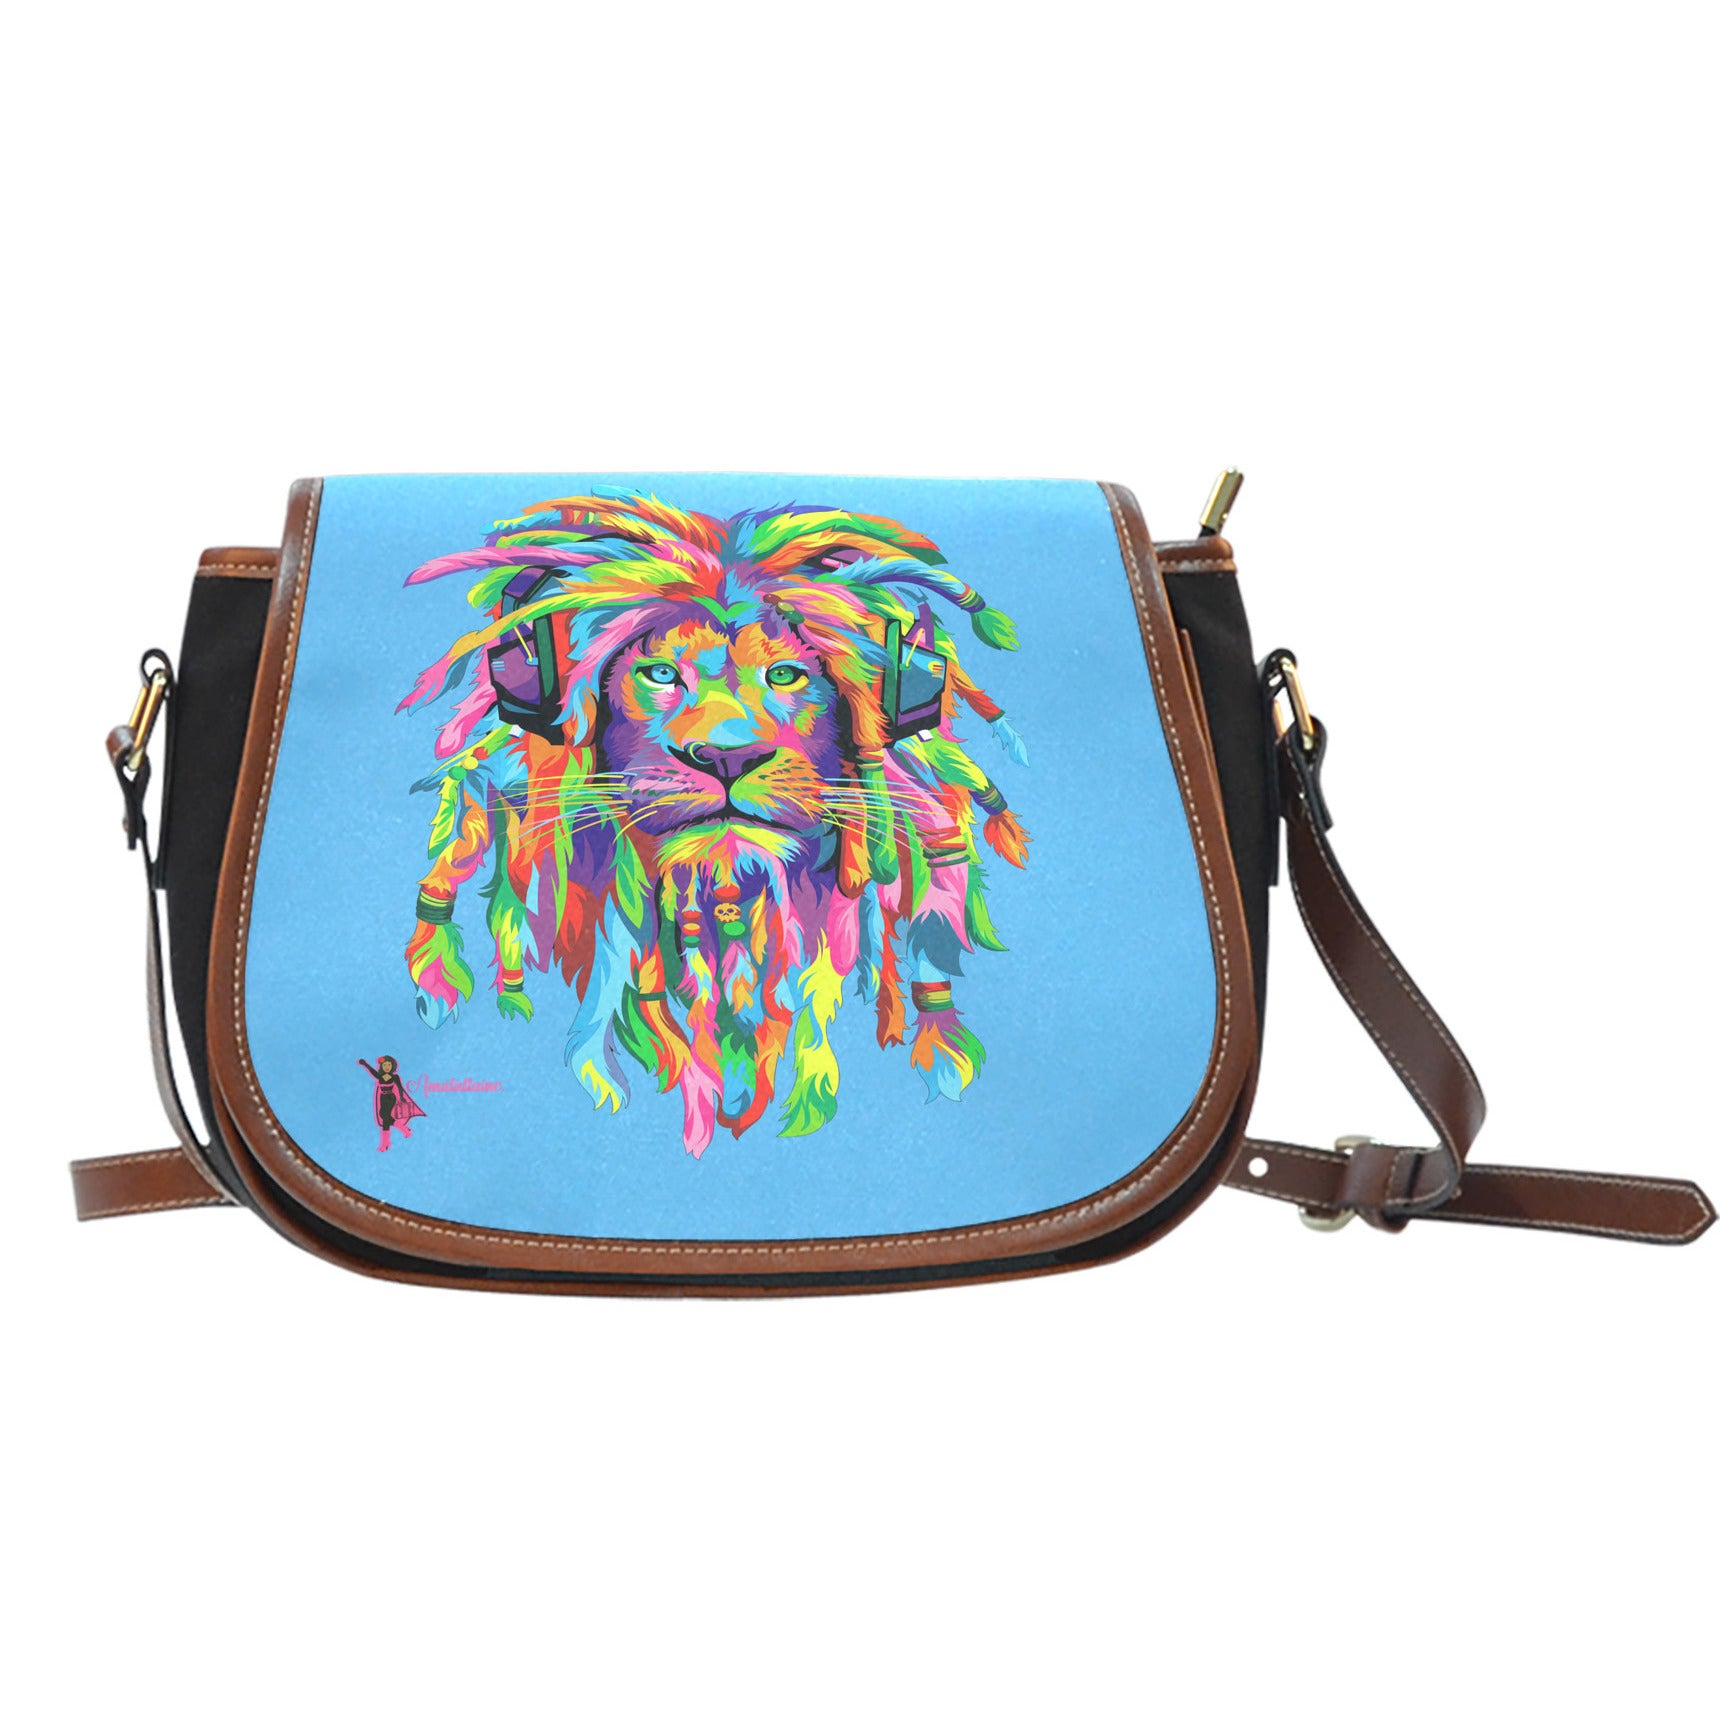 Amatullainc. Lion Rasta Saddle Bags are custom-made-to-order and handcrafted to the highest quality standards. Features One-Sided Print, manufactured with premium water-proof canvas material.